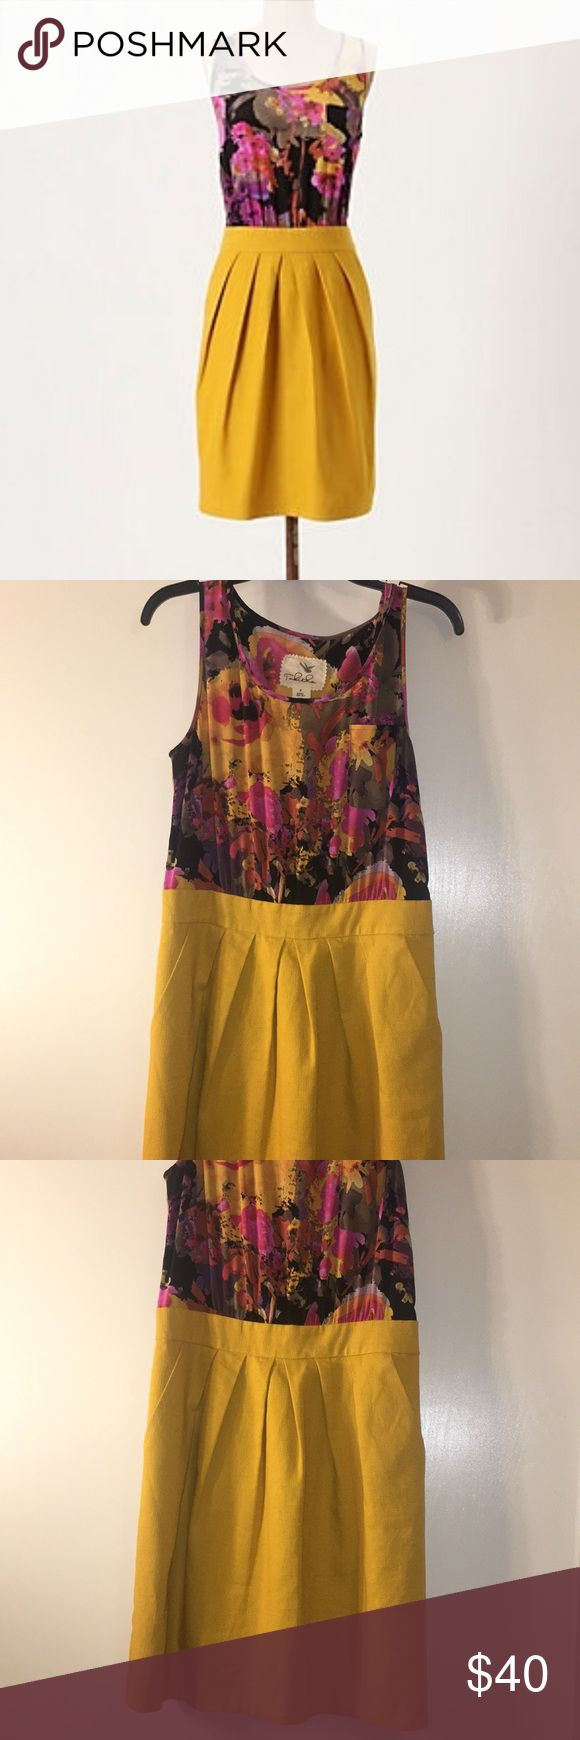 Anthropologie Tabitha Rubied silk floral dress Anthropologie Tabitha Rubied silk floral dress, beautiful colors great with leggings and booties or cute wedges in the summer. Silk top and cute mustard yellow skirt with pockets. Anthropologie Dresses